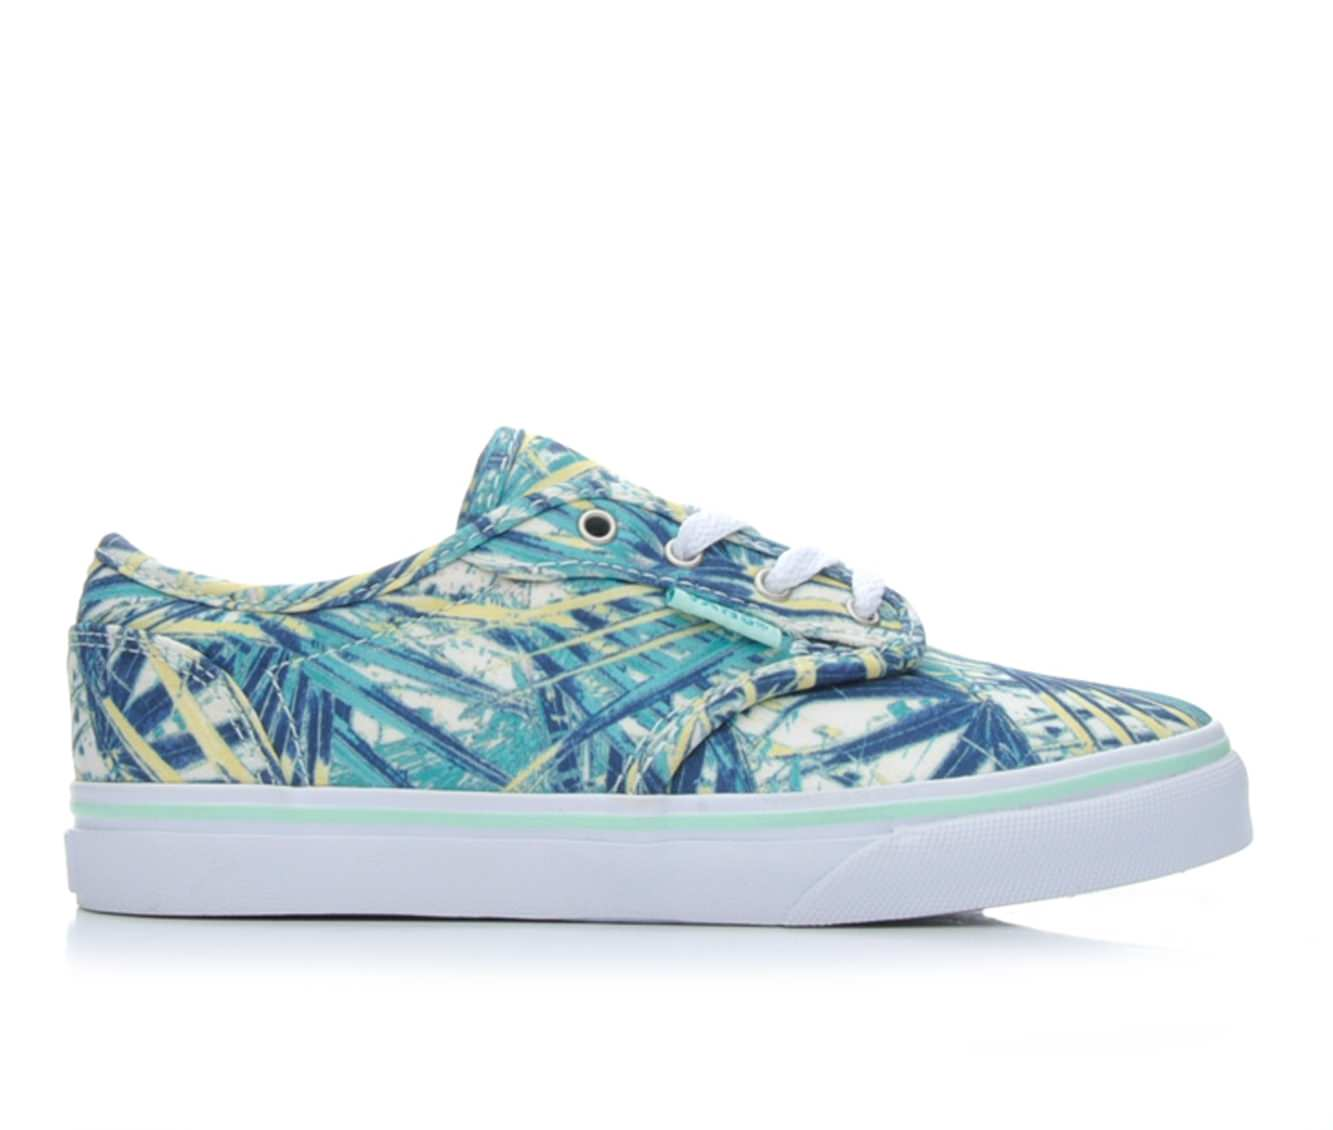 Girls' Vans Atwood Low G Skate Shoes (Blue)